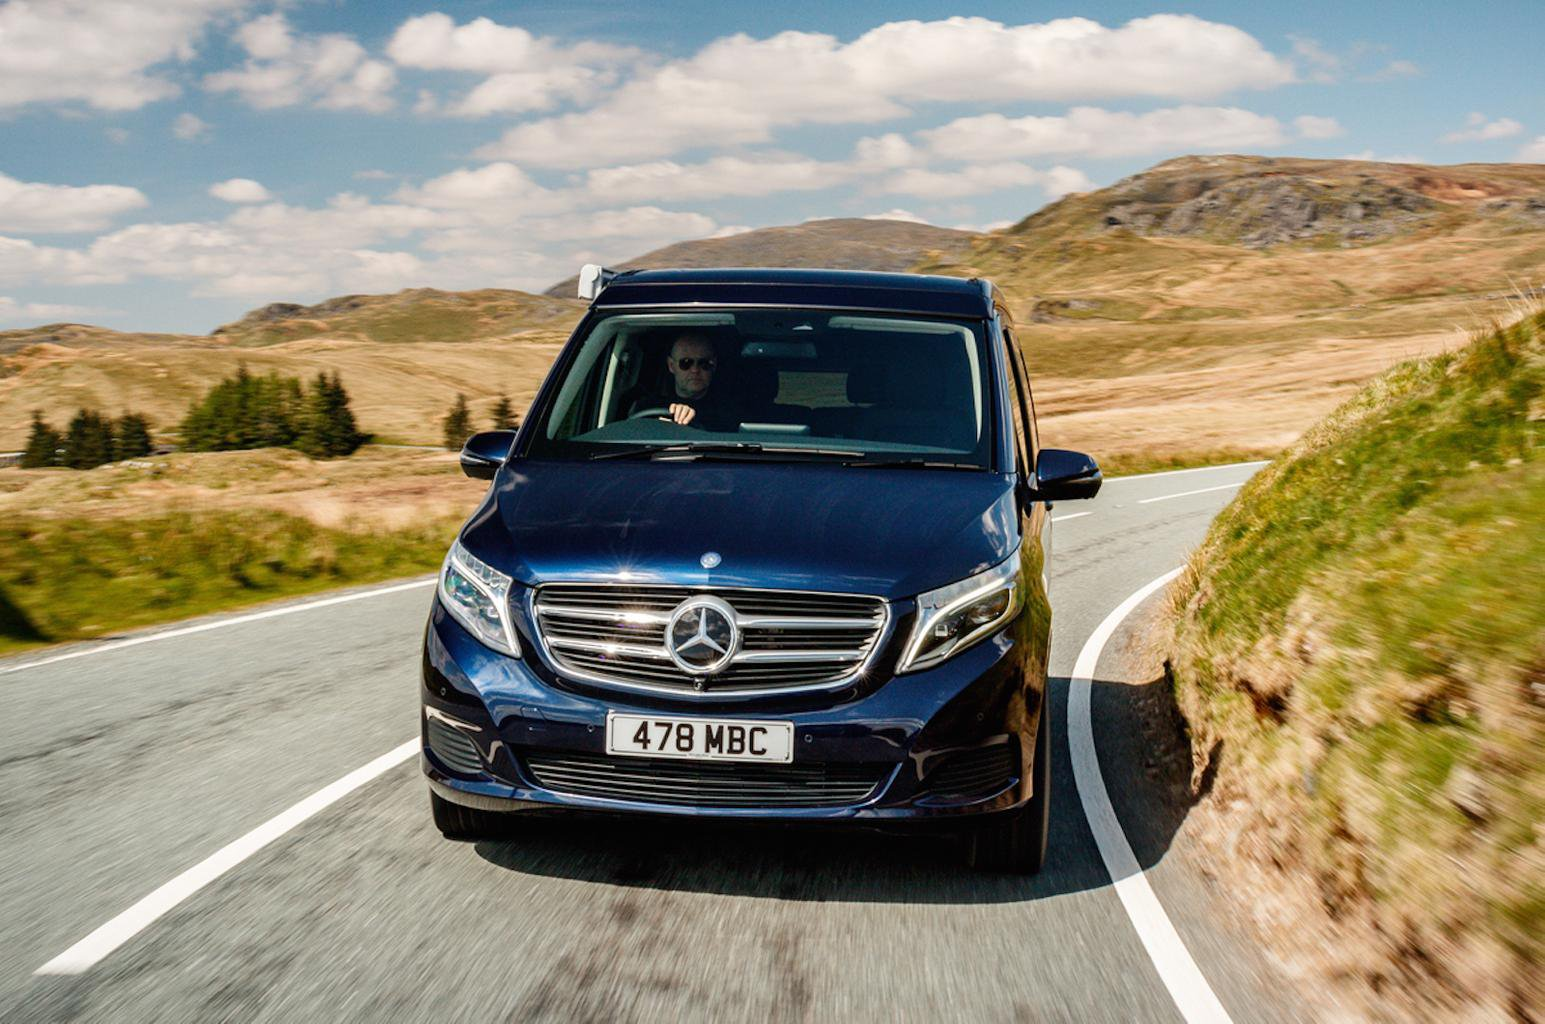 2017 Mercedes-Benz V-Class Marco Polo review verdict, specs, price and release date